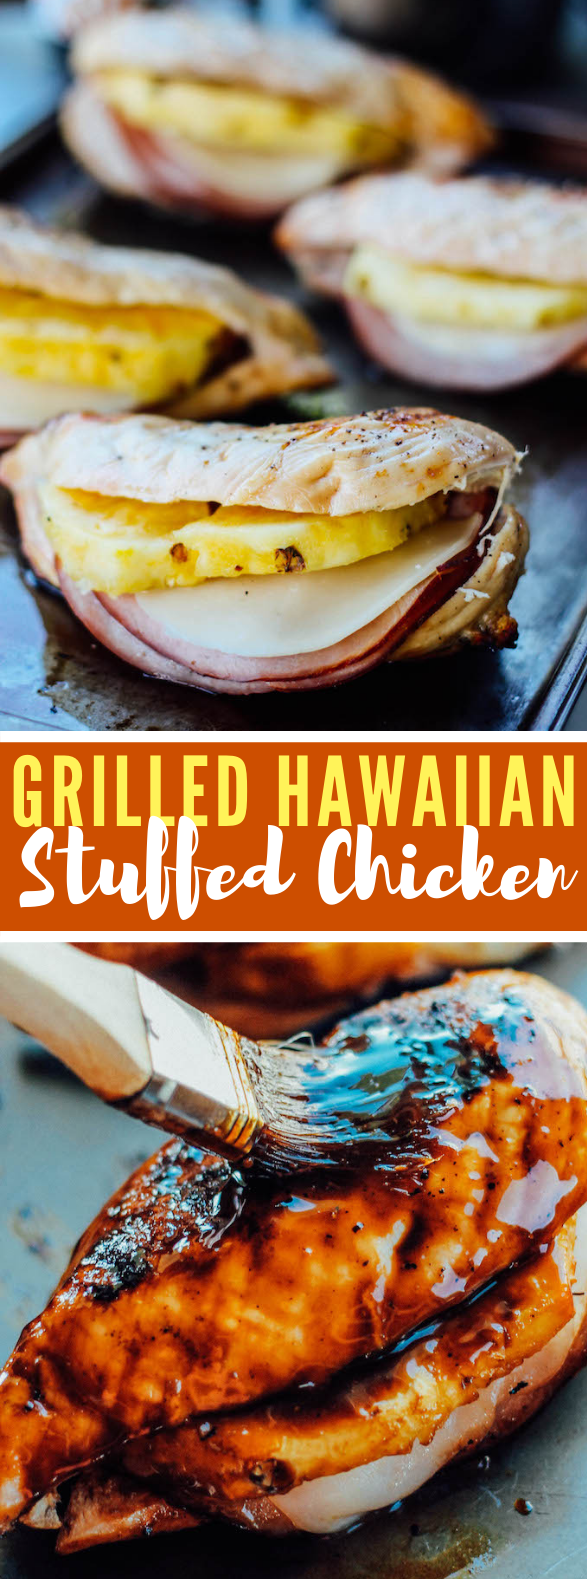 GRILLED HAWAIIAN STUFFED CHICKEN #dinner #chickenrecipe